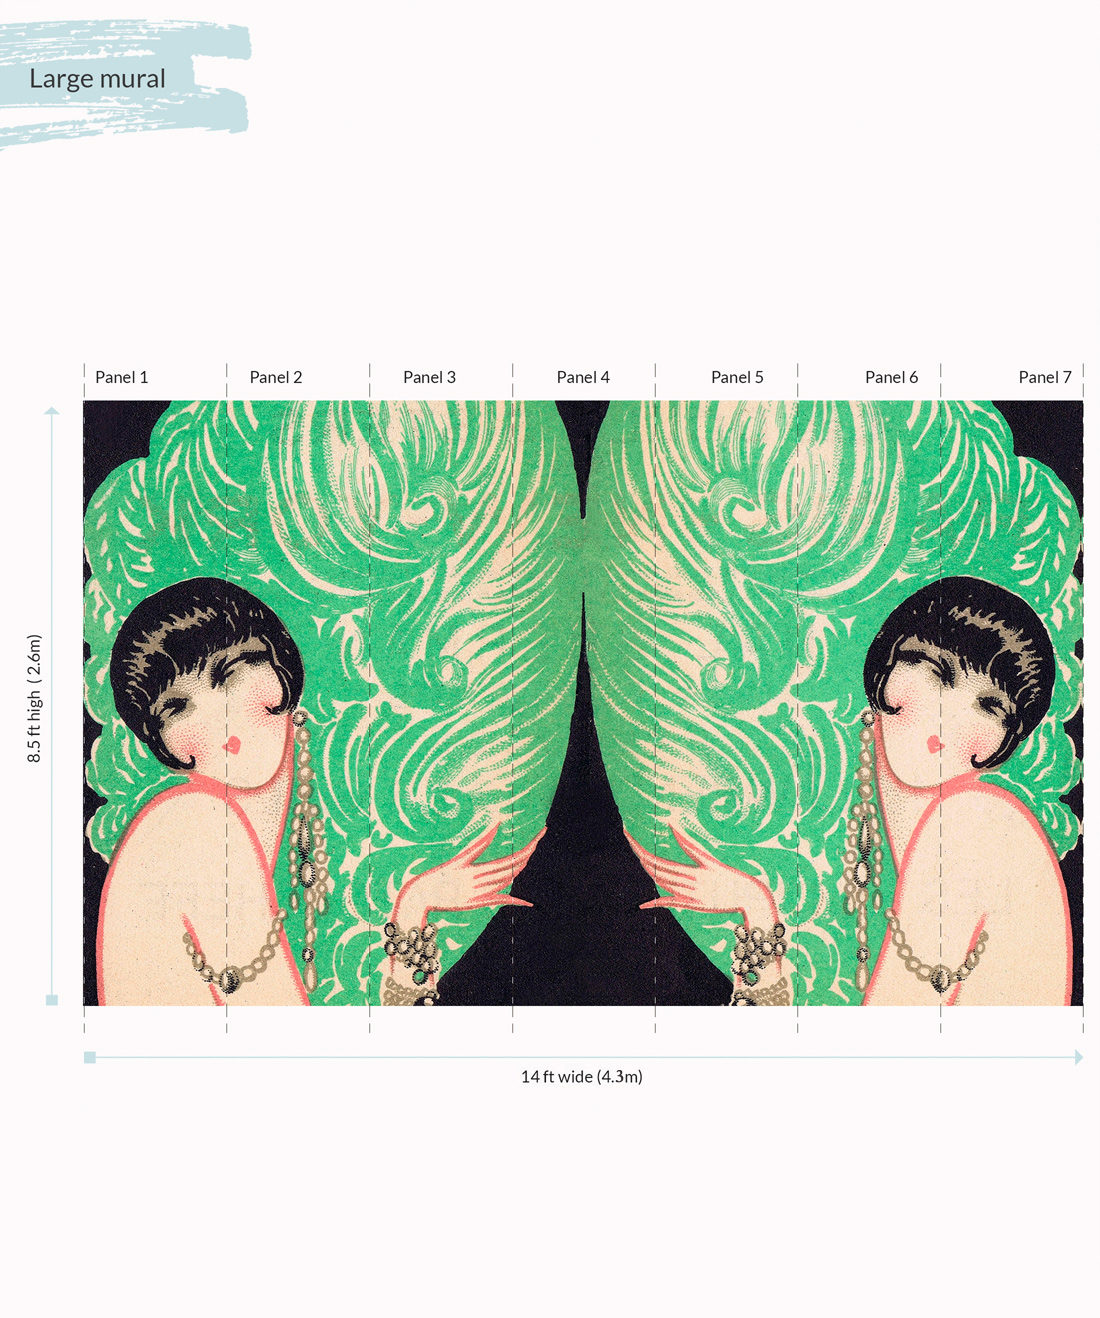 Mirrored Burlesque Wall Mural - Large